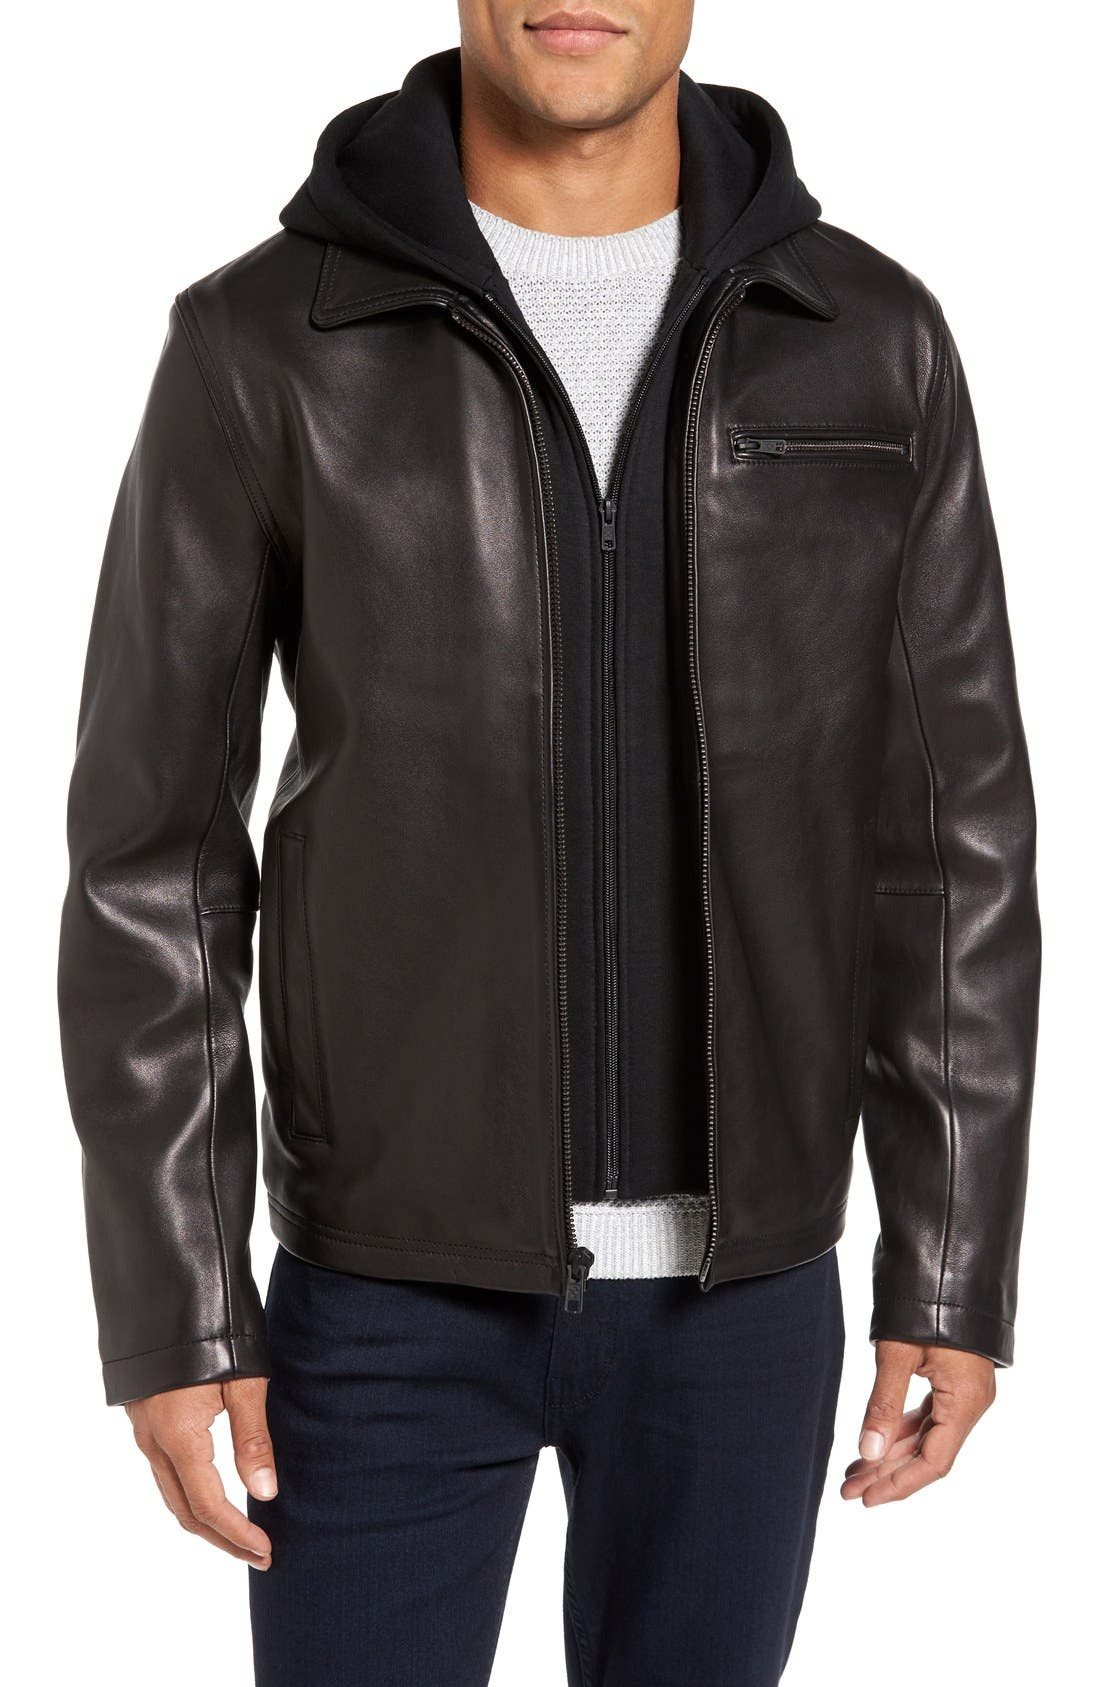 Leather Jacket with Removable Hooded Bib,                         Main,                         color, Black